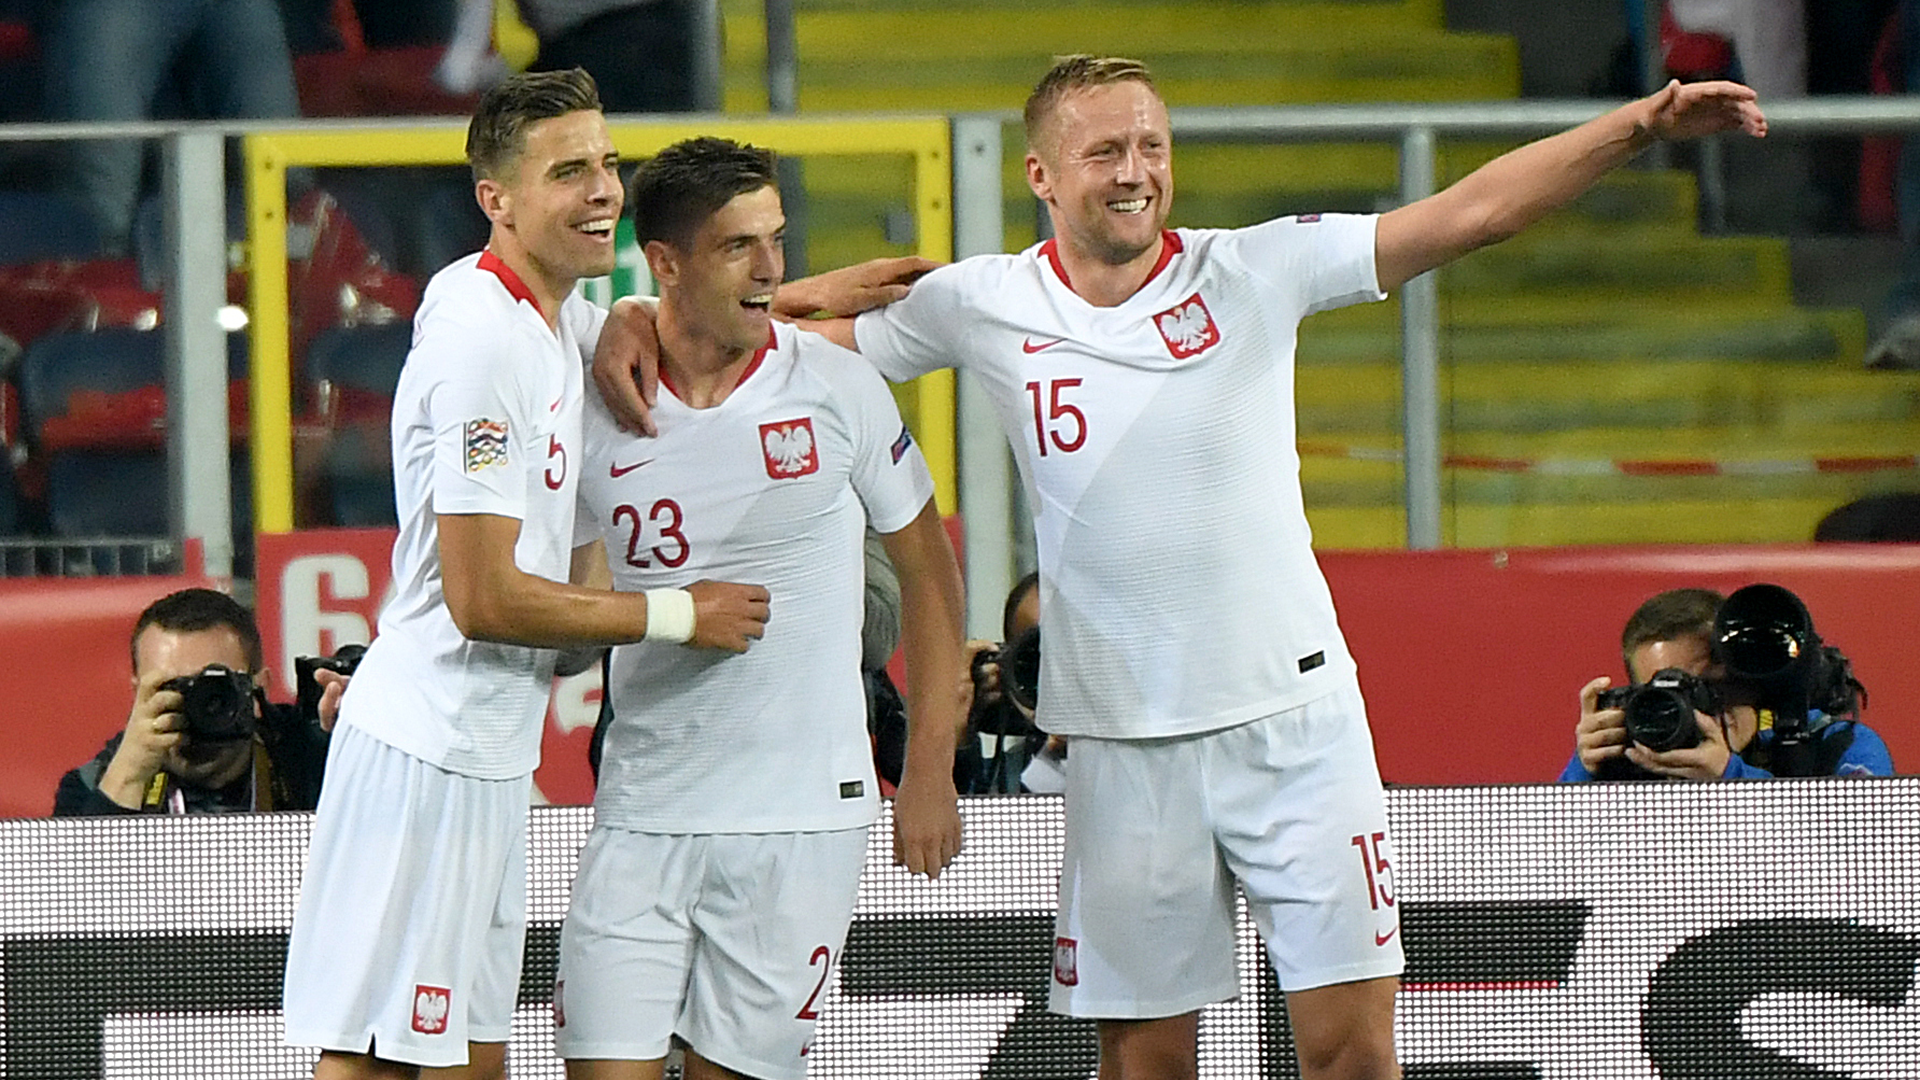 Nations League wrap: Late goal steals win for Italy